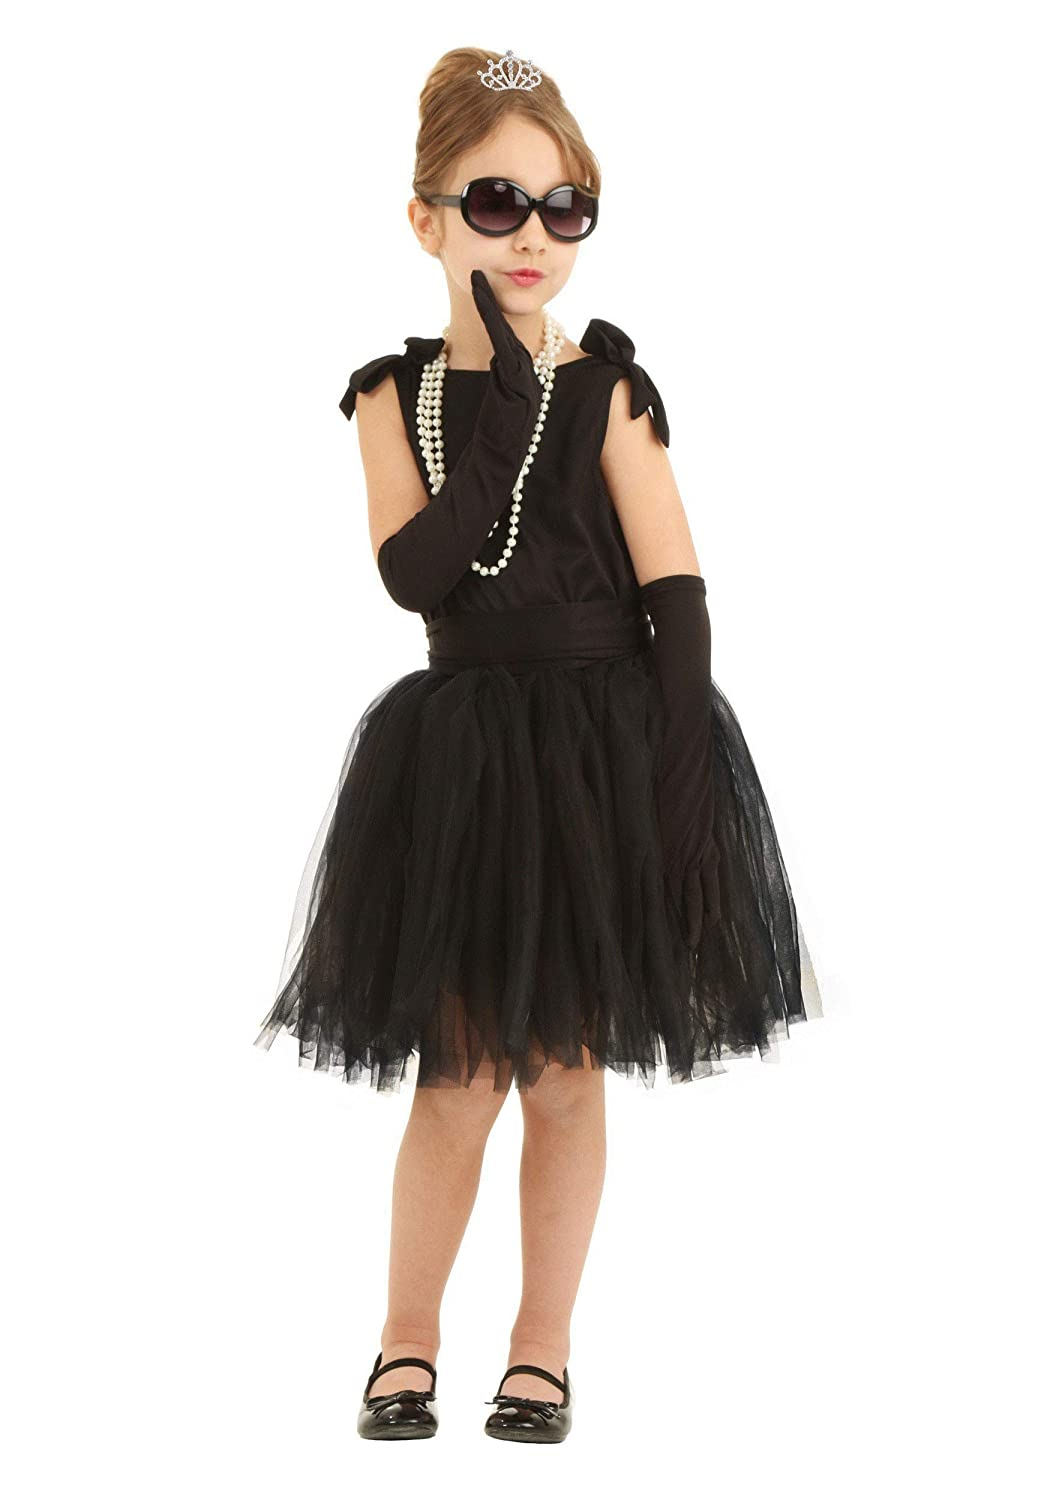 Vintage Style Children's Clothing: Girls, Boys, Baby, Toddler Child Breakfast at Tiffanys Holly Golightly Costume $29.99 AT vintagedancer.com